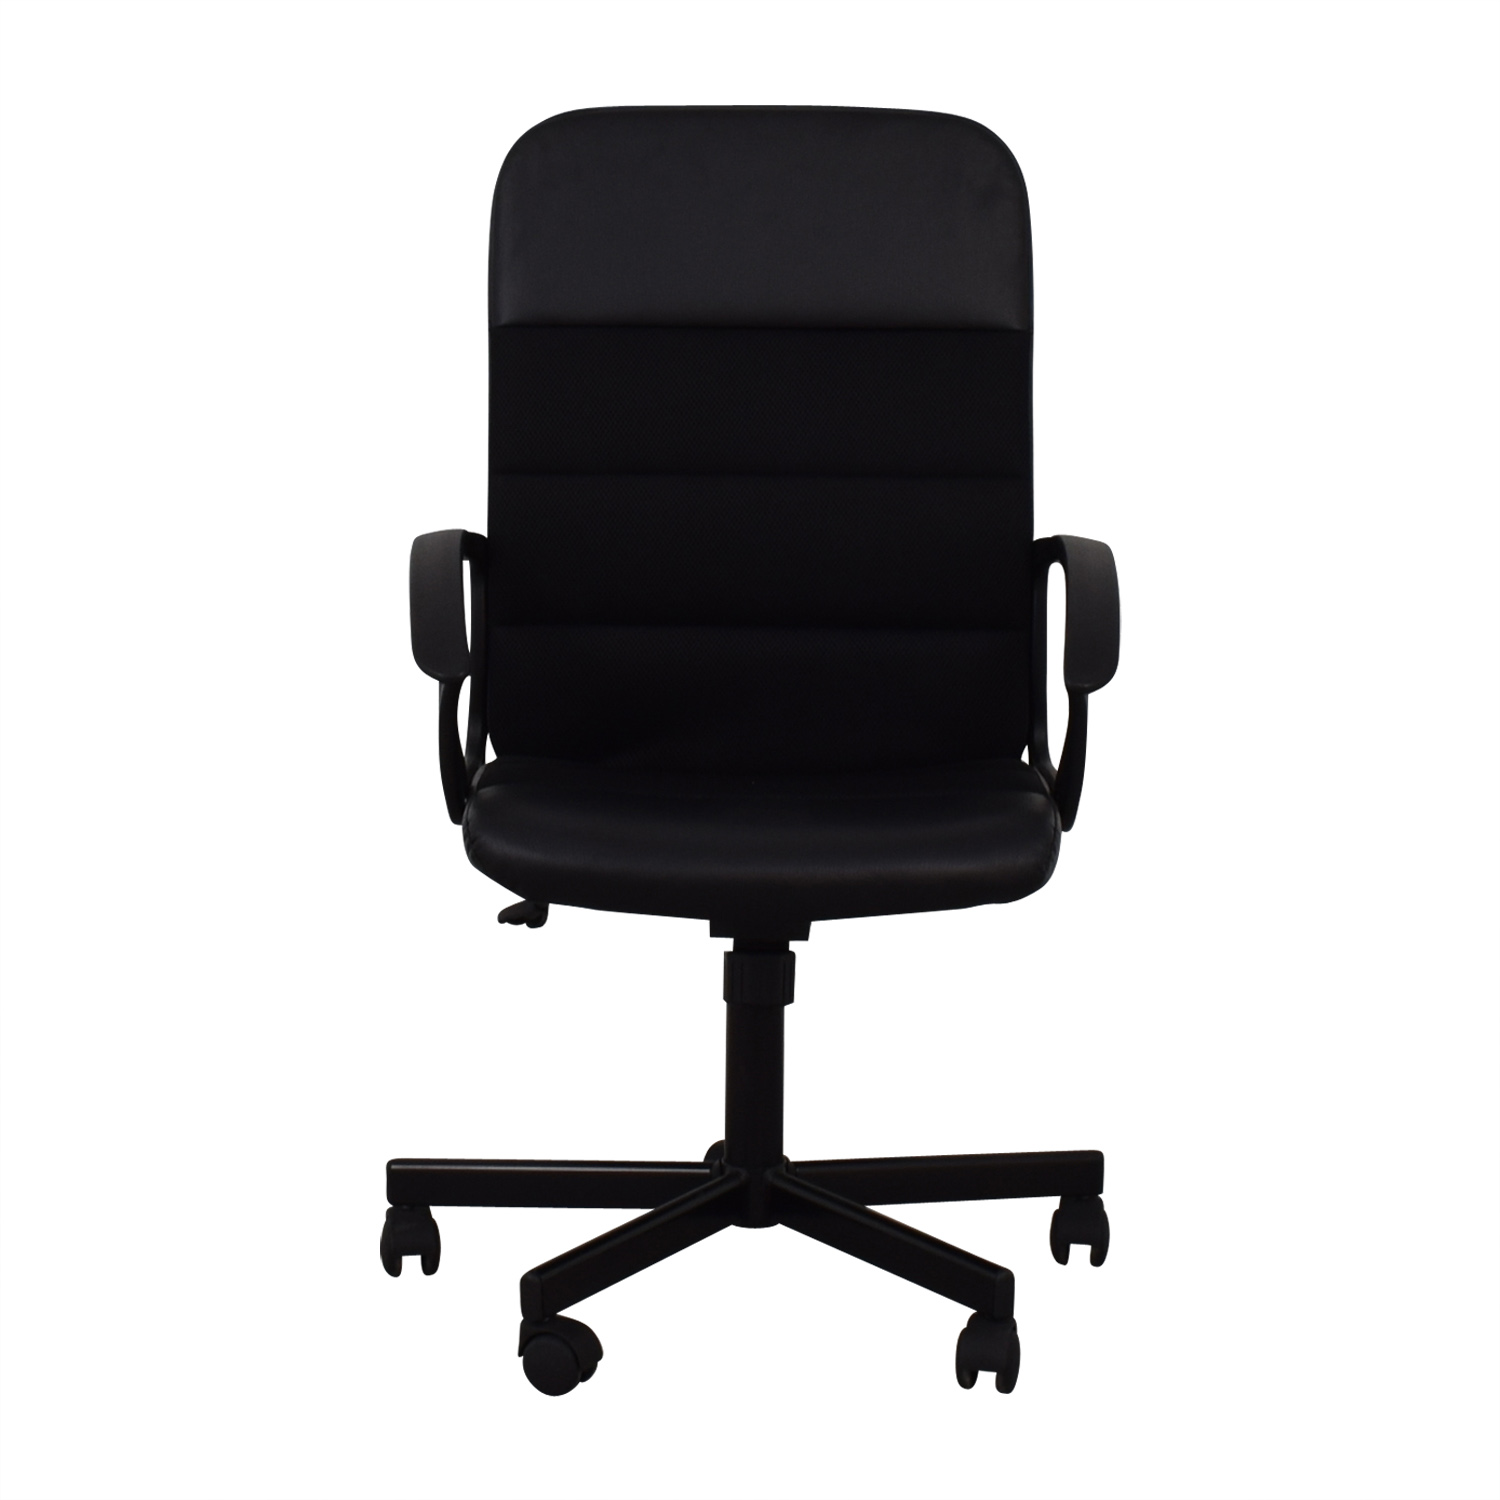 IKEA IKEA Renberget Black Office Chairs nyc